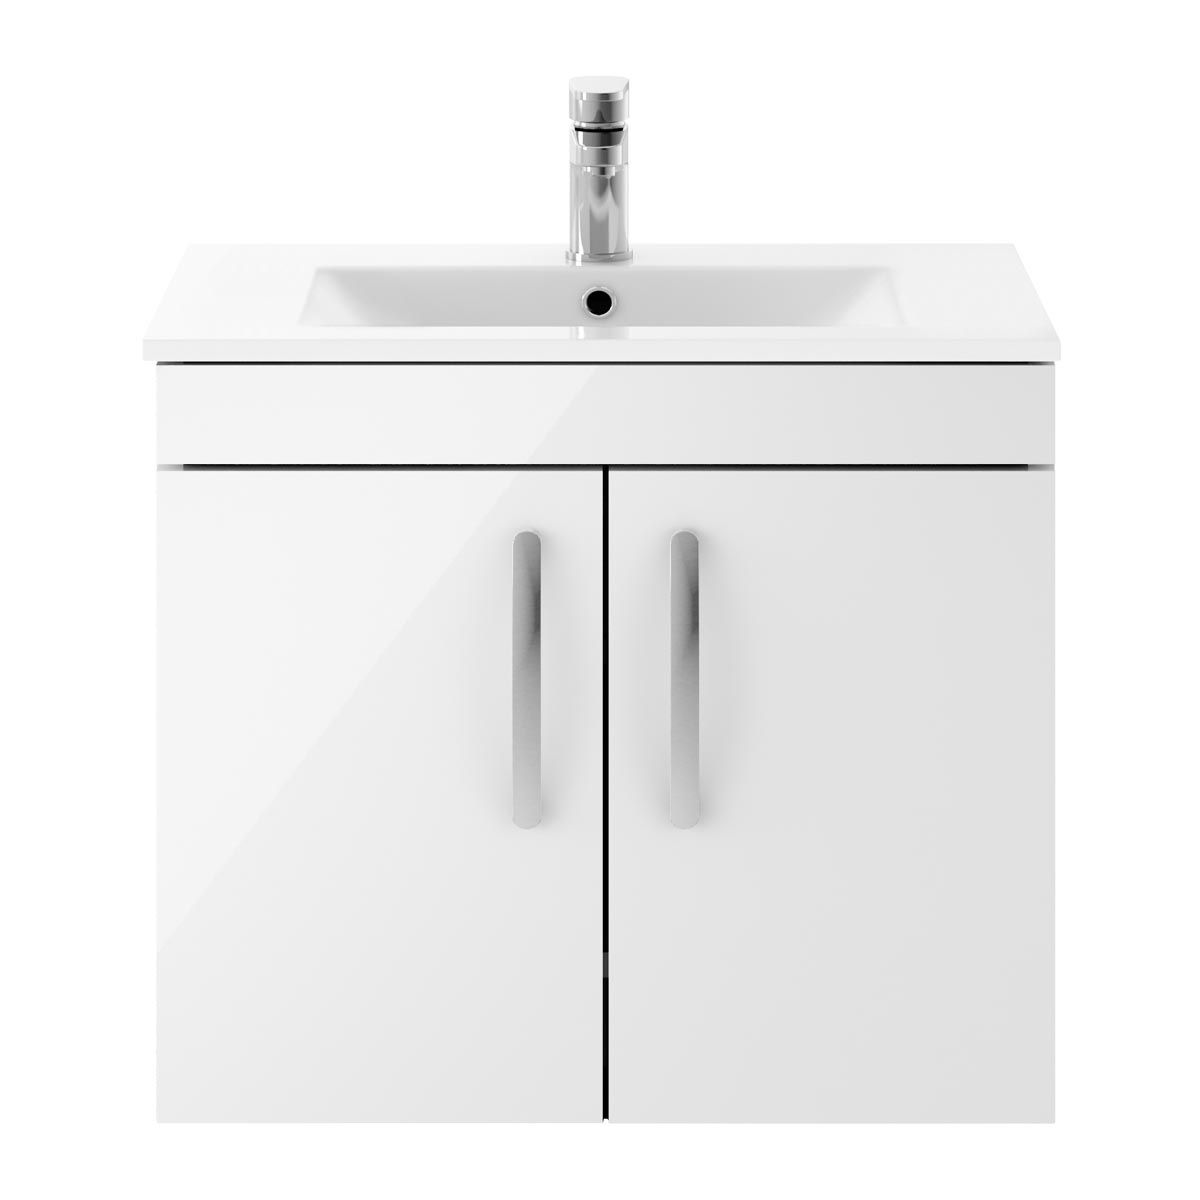 Nuie Athena Gloss White 2 Door Wall Hung Vanity Unit with 18mm Profile Basin 600mm